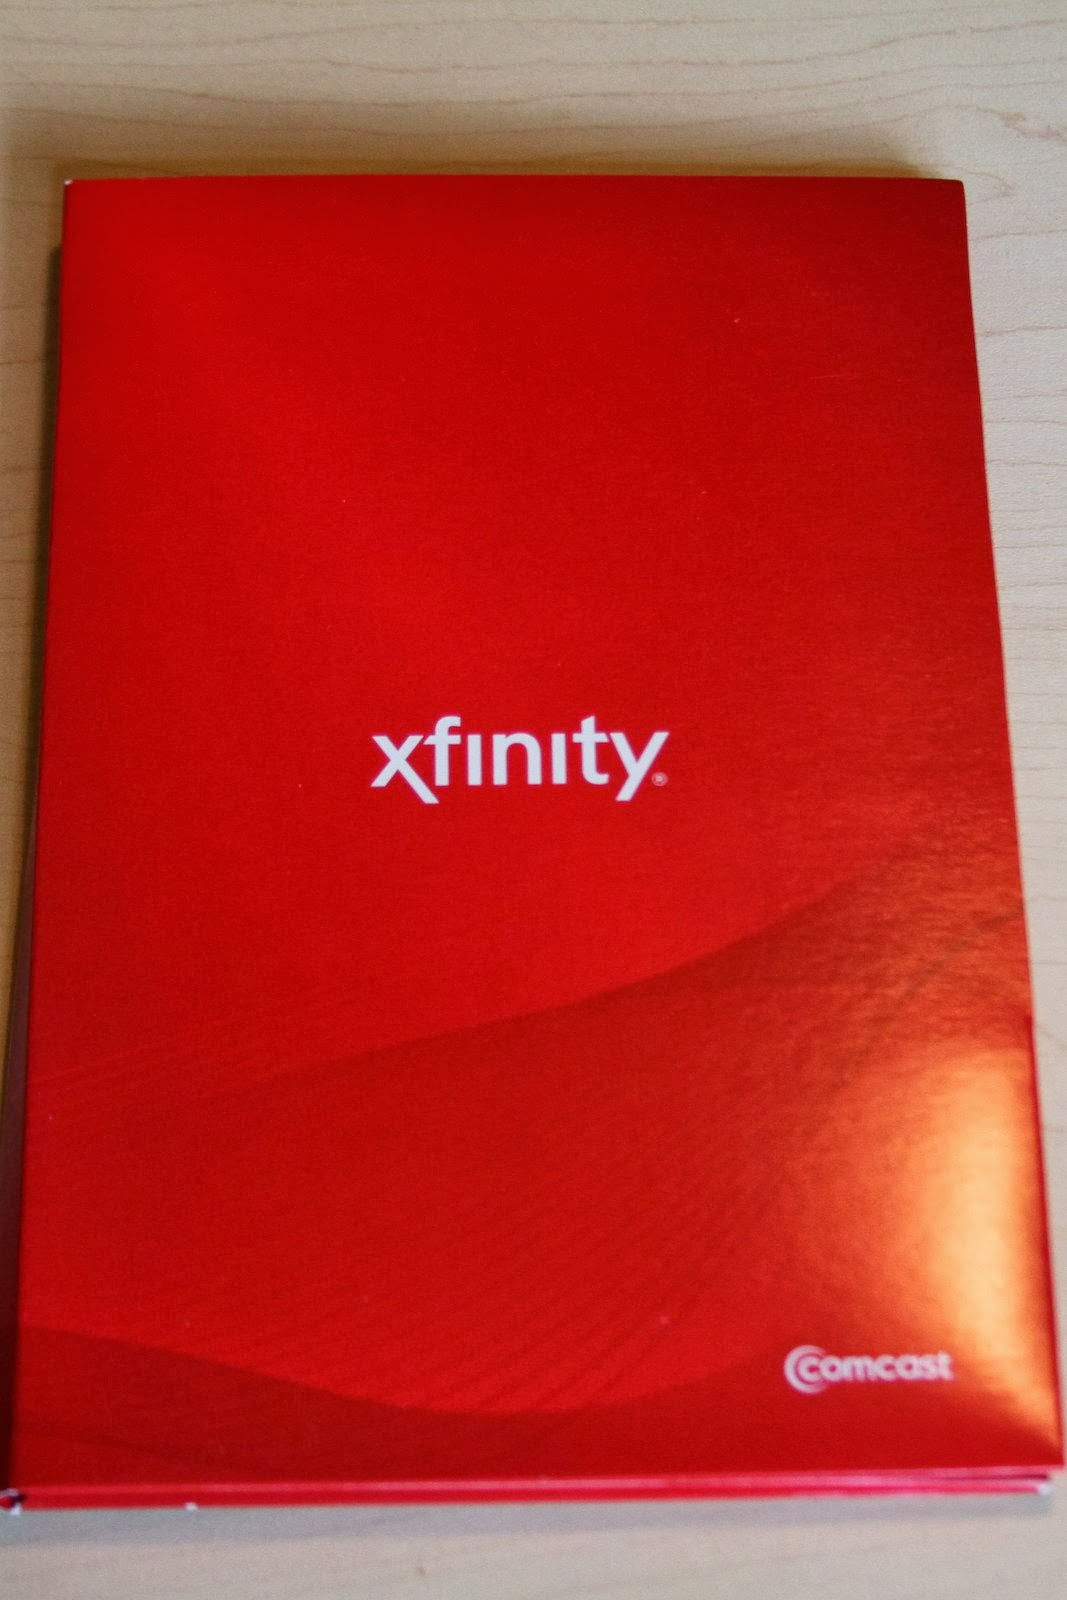 Comcast Xfinity HD uDTA Pace DC60Xu Unboxing and Setup Instructions